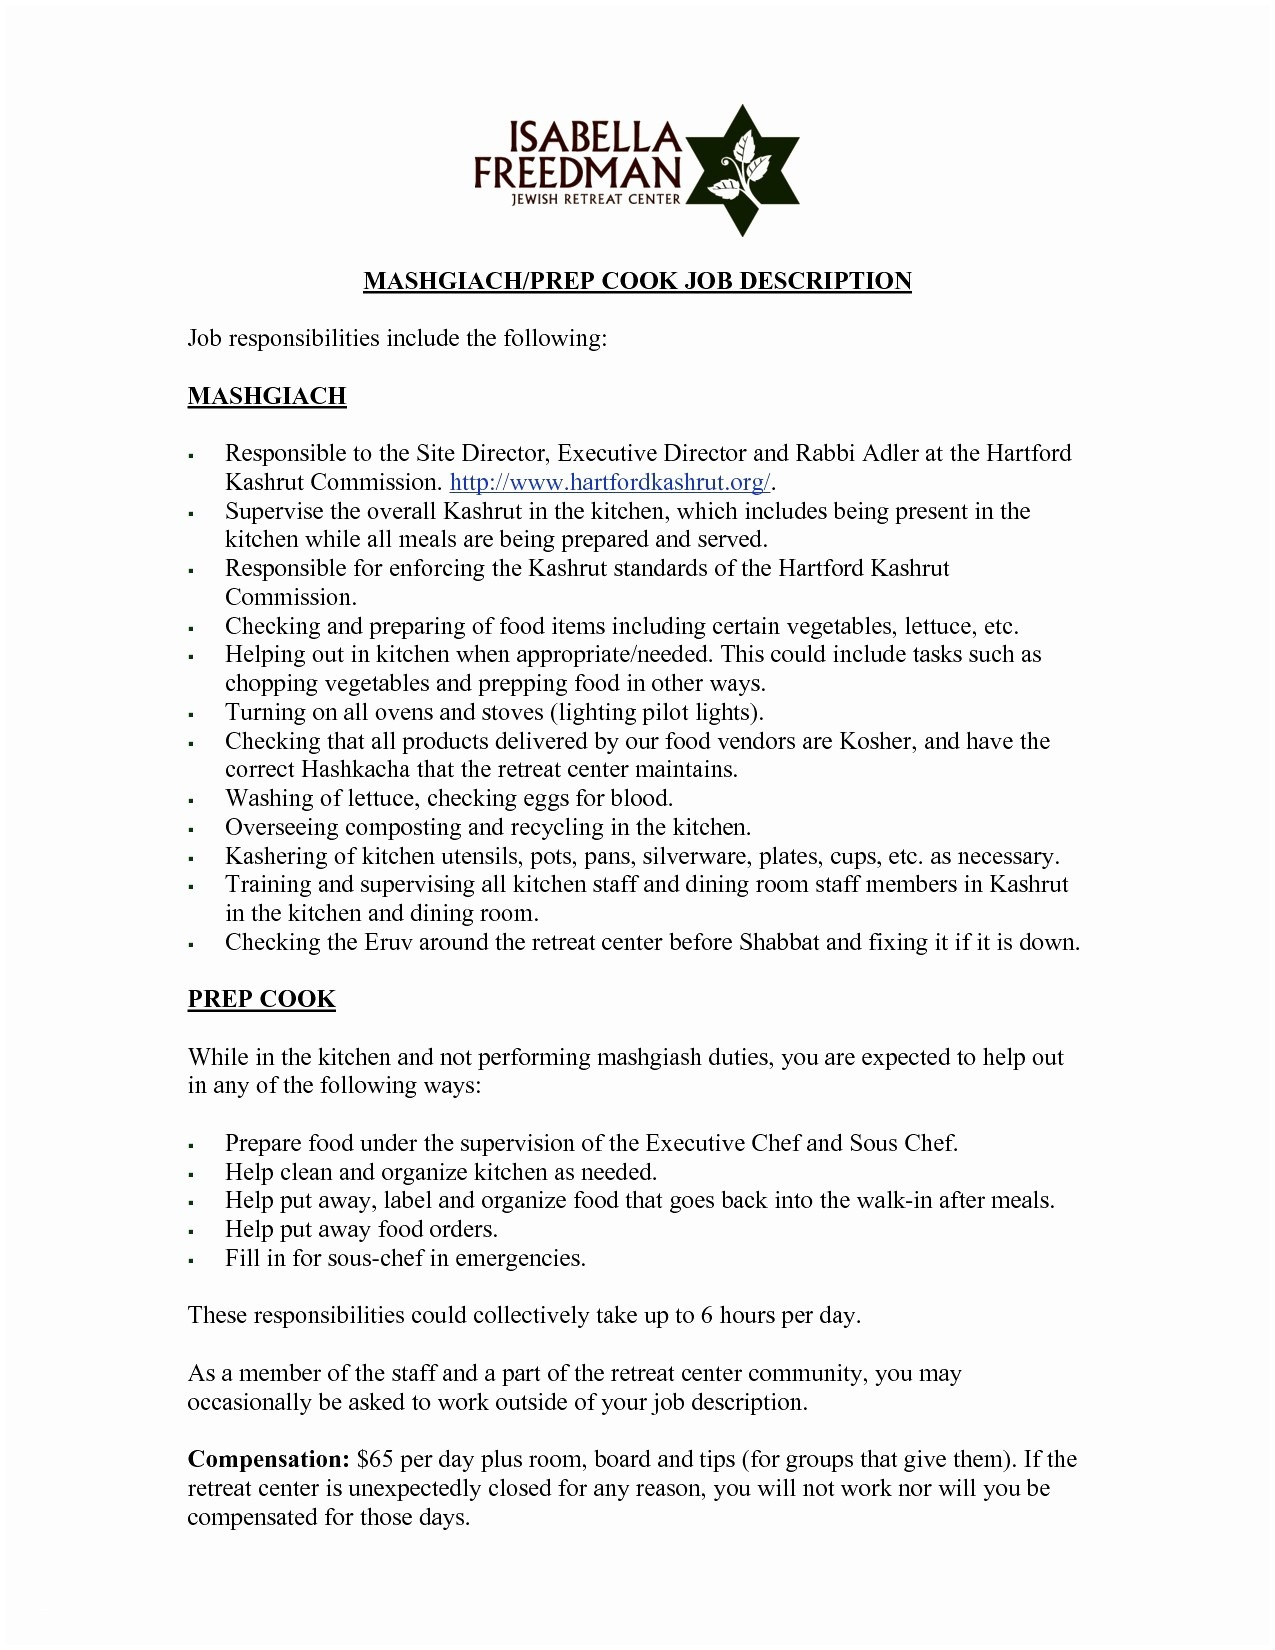 Cover Letter Template Printable - Free to Print Resume Templates Myacereporter Myacereporter